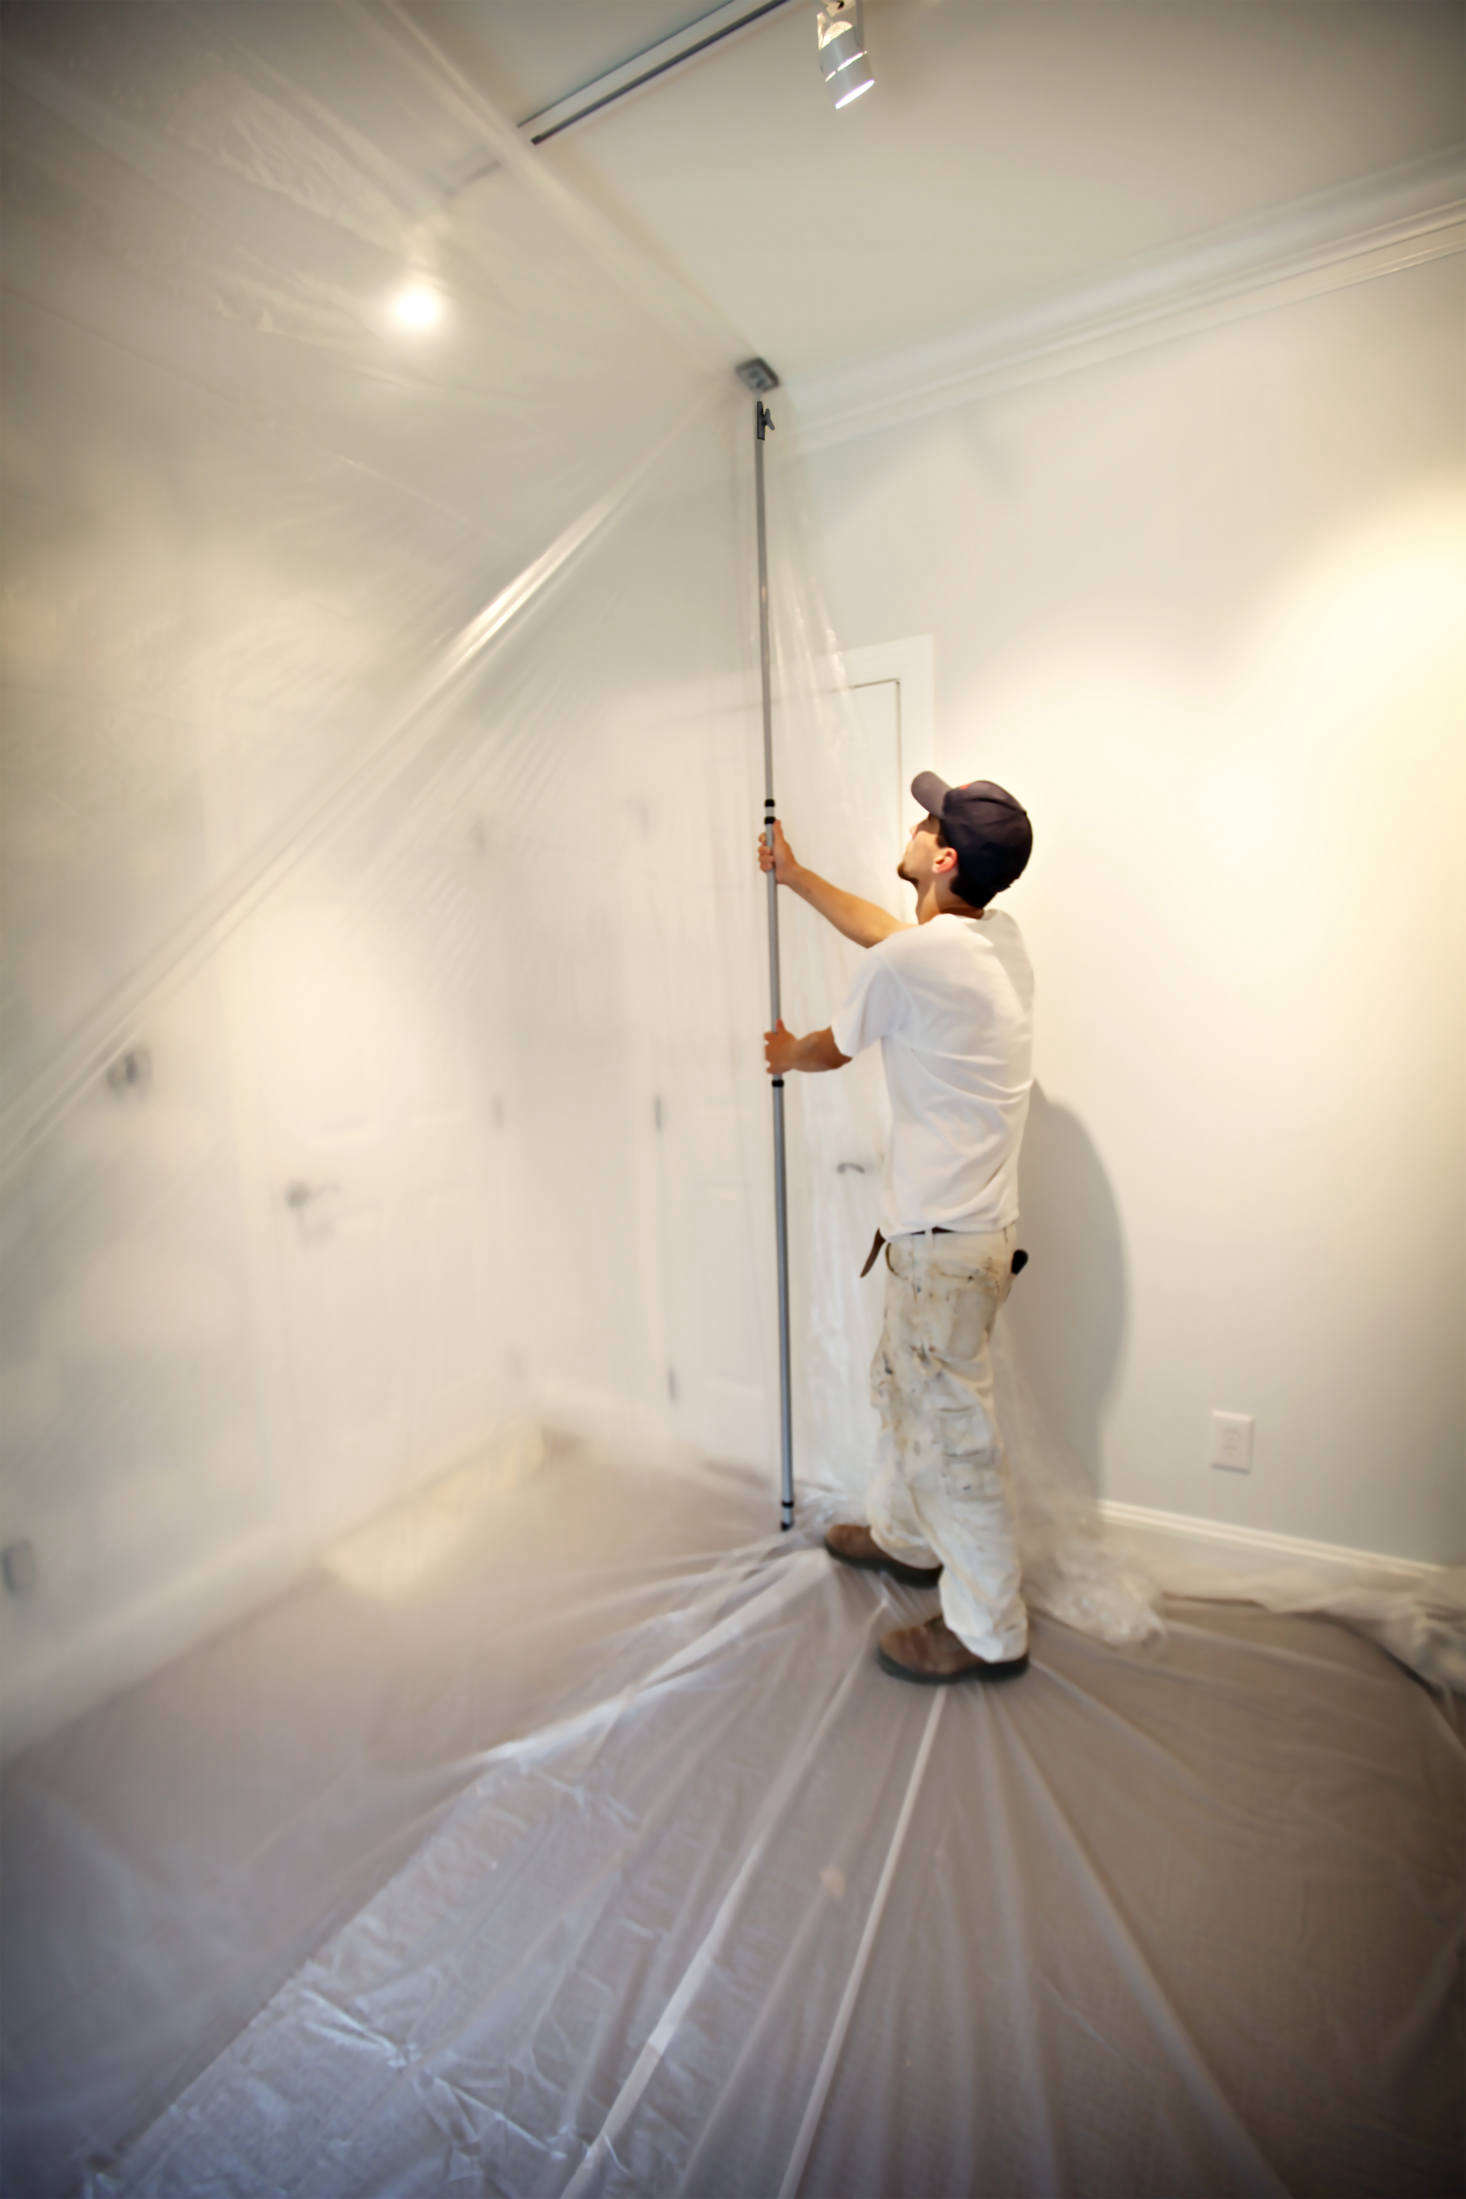 For dust containment, Trimaco's EZ Up Dust Containment Poles work with plastic sheeting to create a dust barrier. Creating the barrier can be a one-person job: Simply clip the plastic sheeting to the pole and adjust to your ceiling height, then lock the pole in place. The poles reach a height of 12 feet, which makes them suitable for multiple ceiling heights.